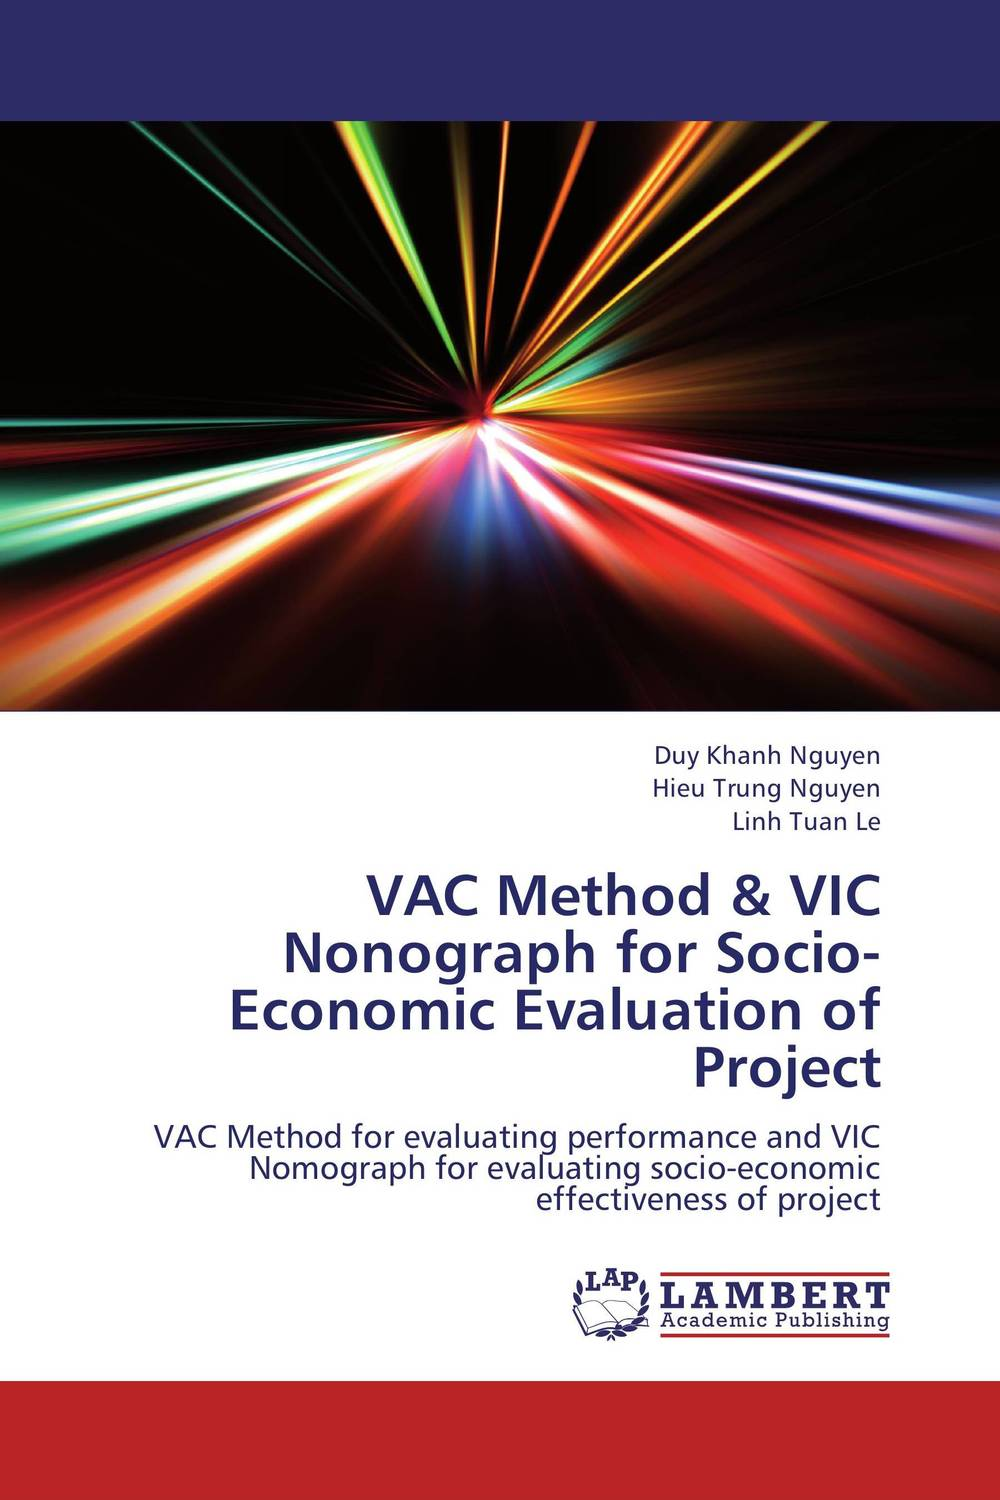 VAC Method & VIC Nonograph for Socio-Economic Evaluation of Project thermodynamic and economic evaluation of co2 refrigeration systems